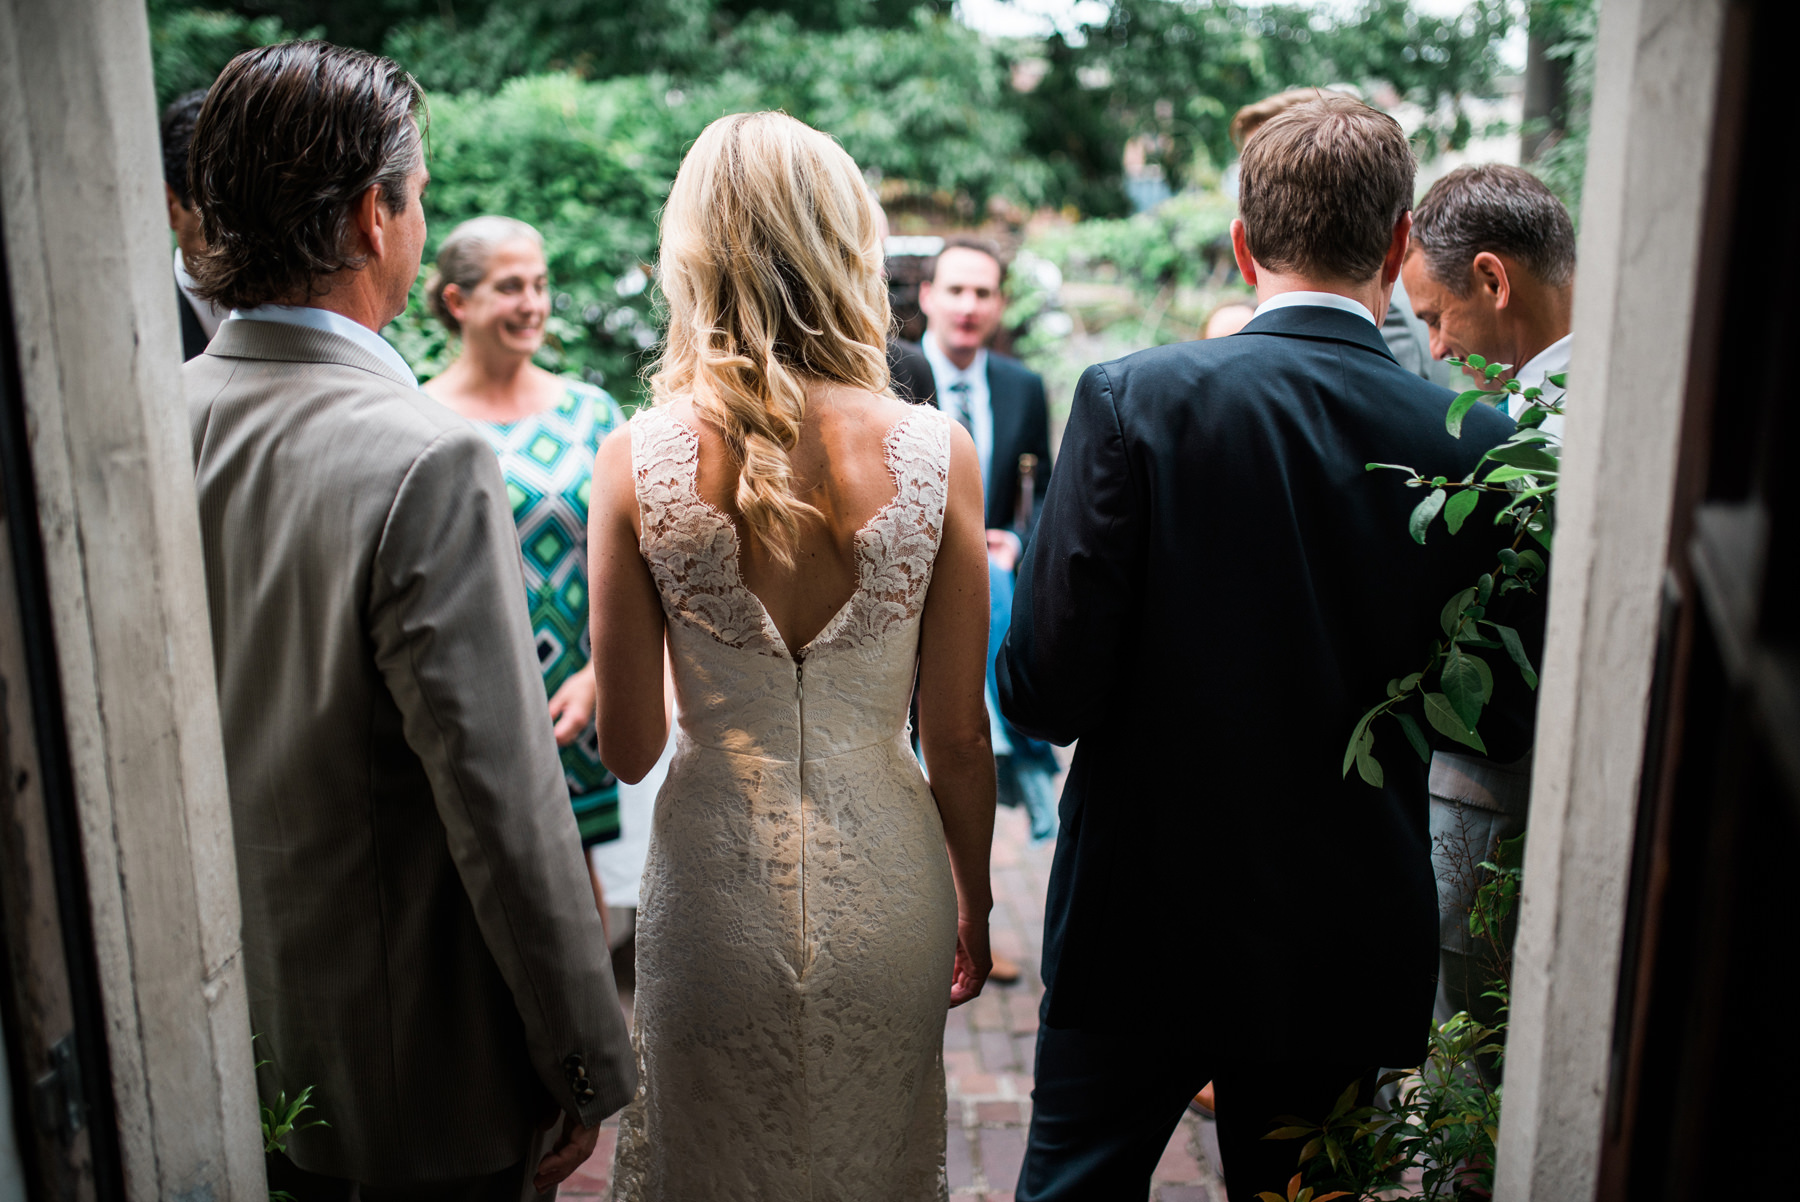 223-outdoor-wedding-at-the-corson-building-in-seattle.jpg